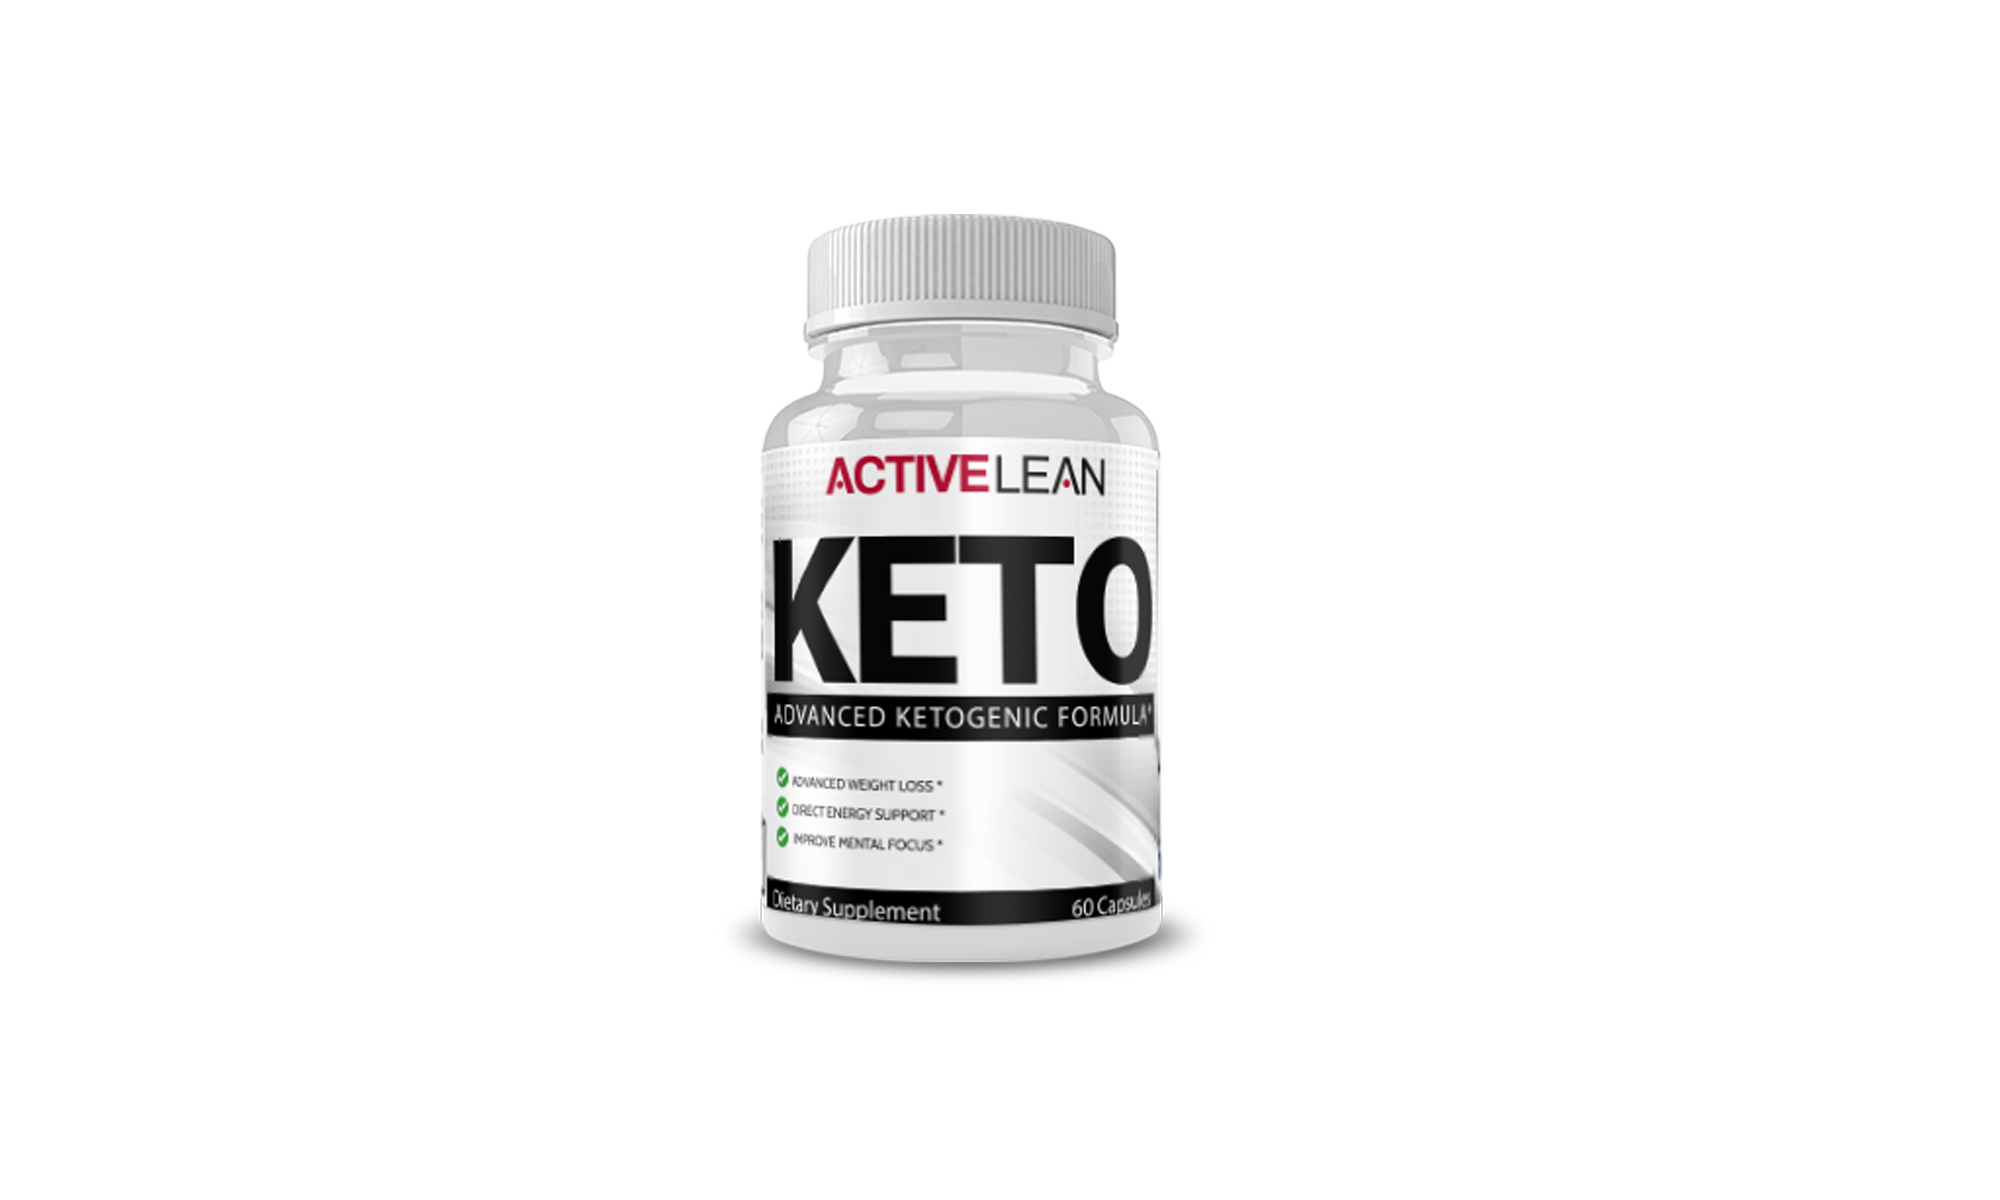 Active Lean Keto review